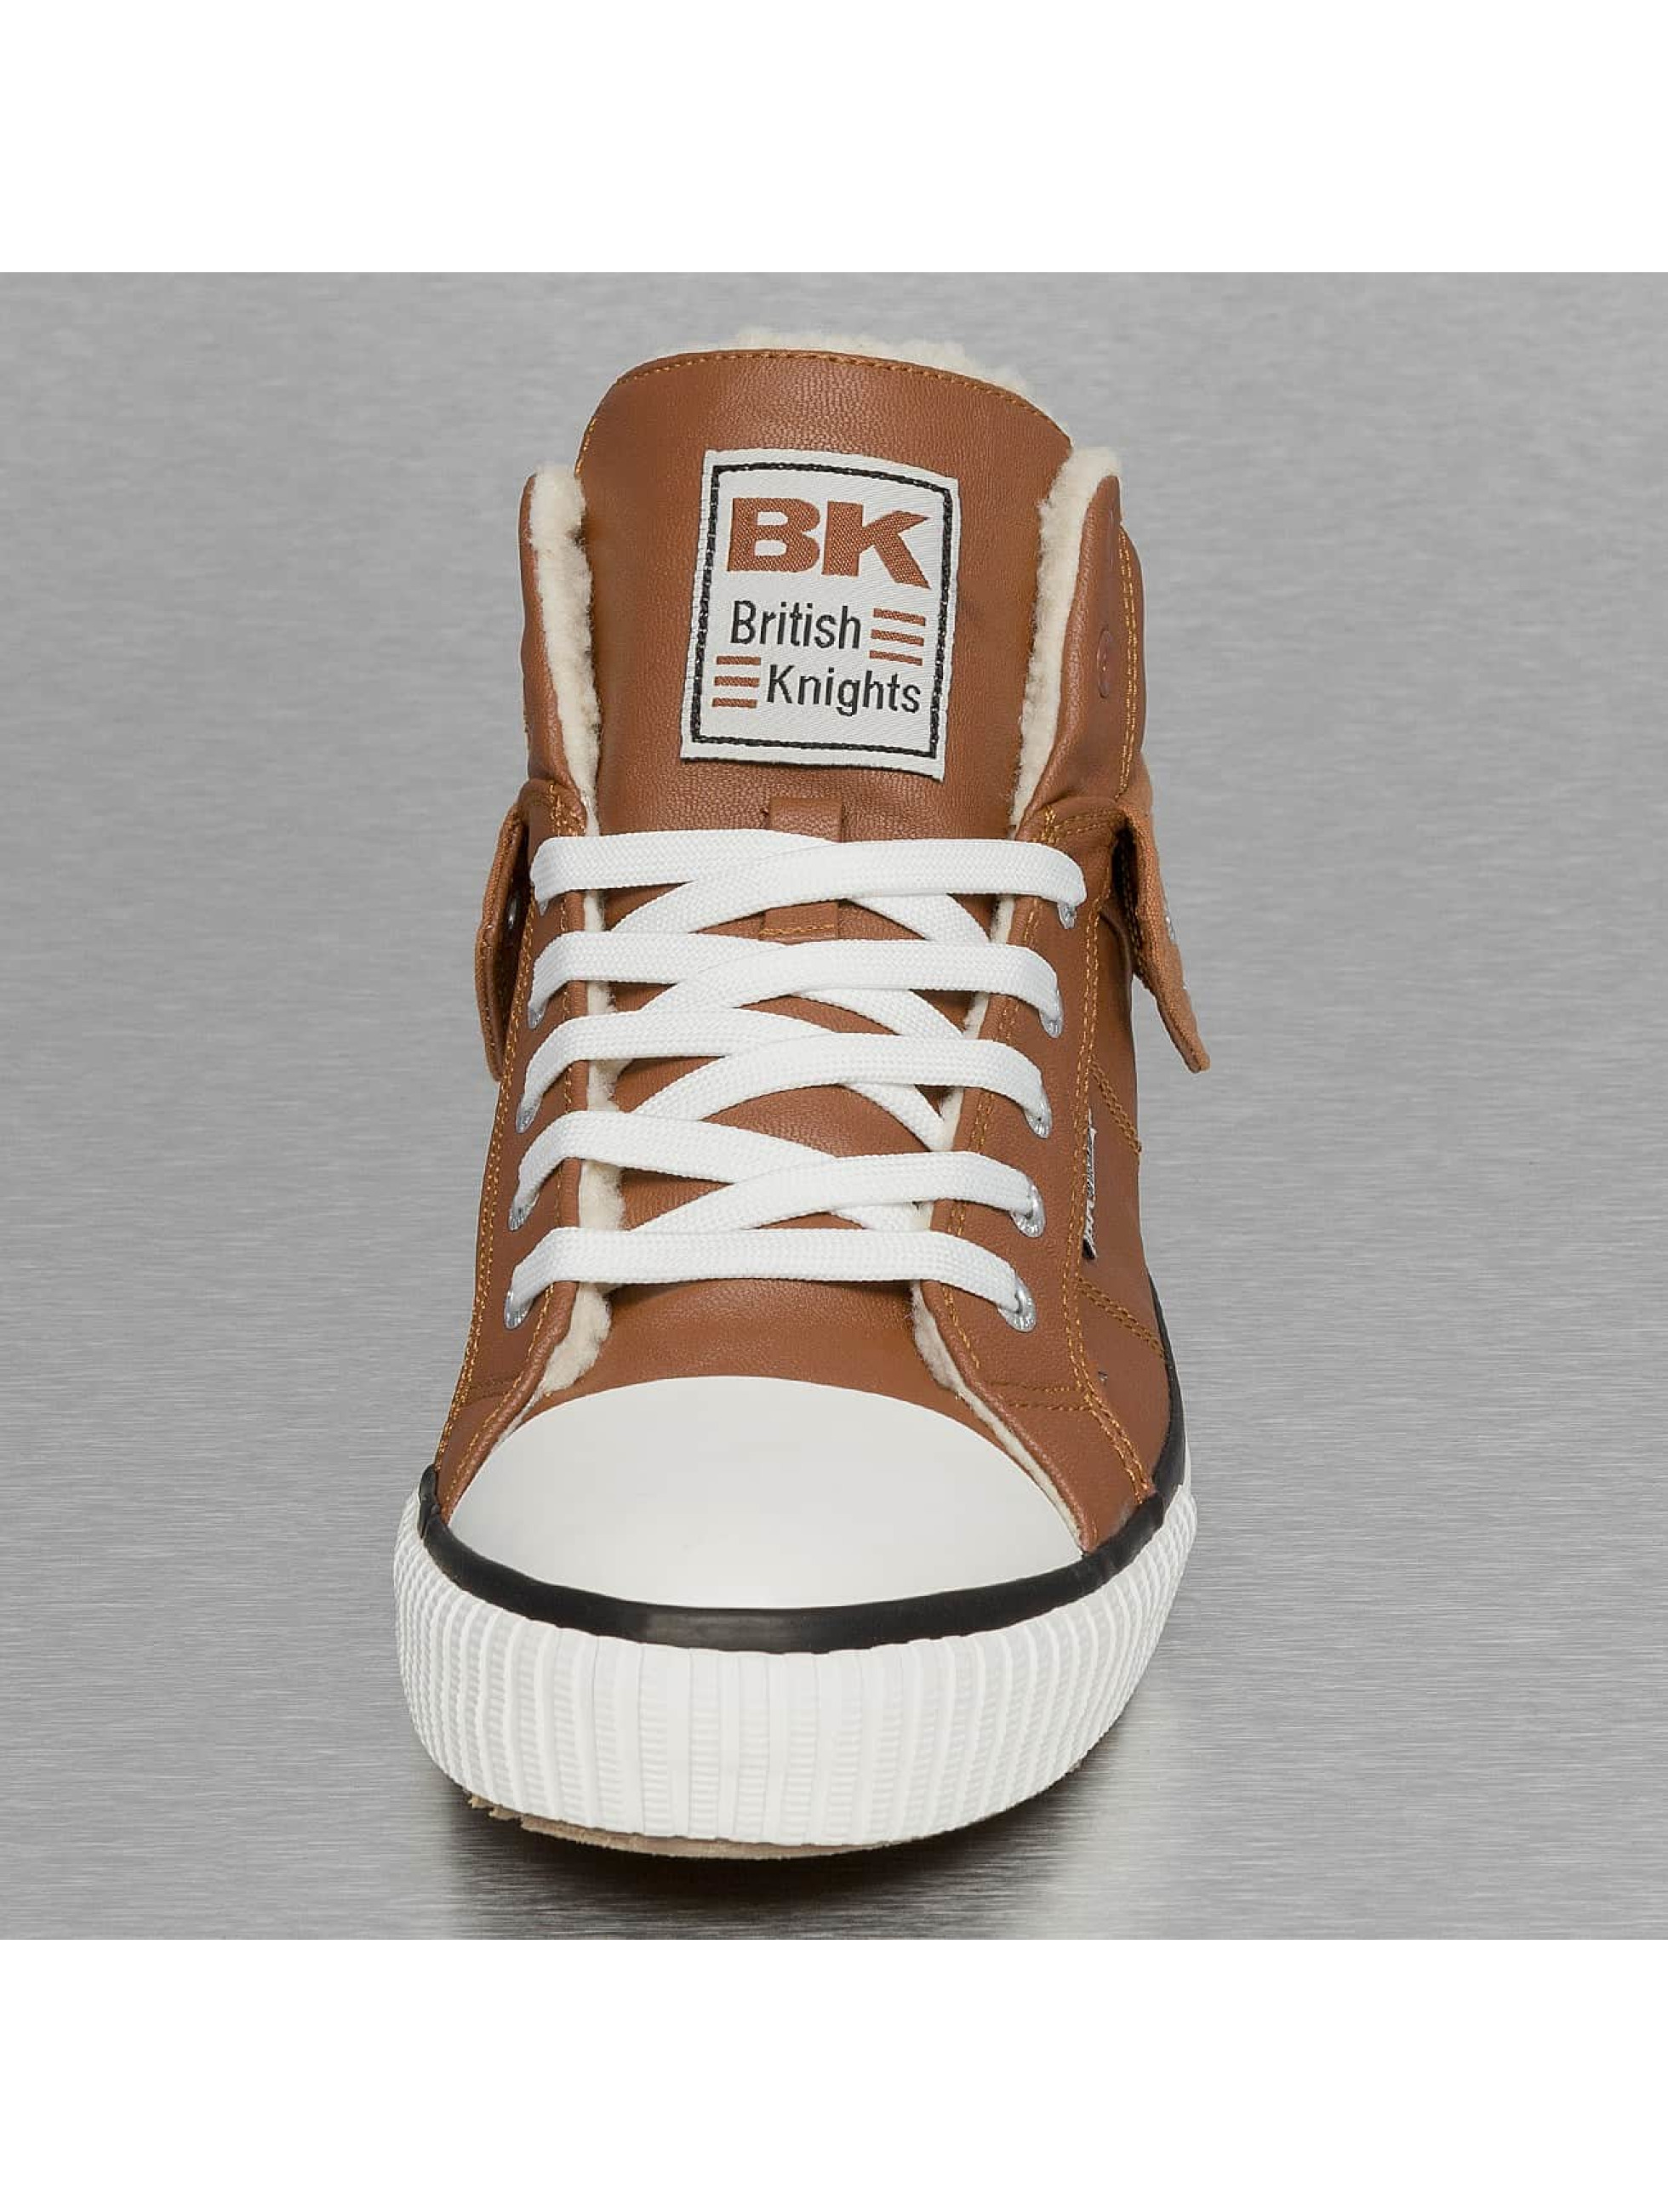 British Knights Sneakers Roco PU WL Profile hnedá